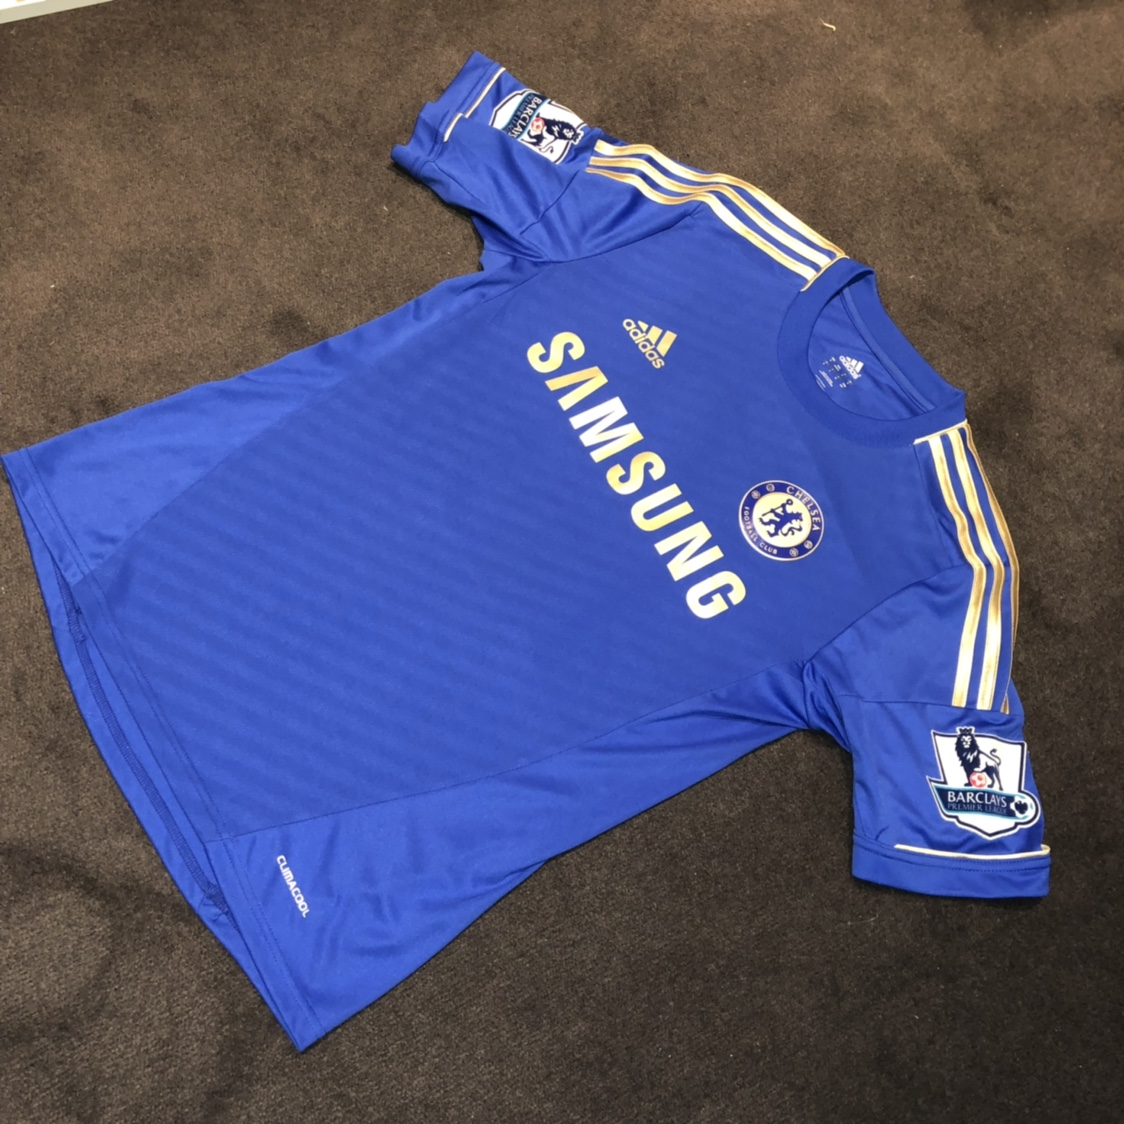 detailed look 565c4 2c1ce Chelsea 2012/13 Home Kit Juan Mata Jersey Size... - Depop